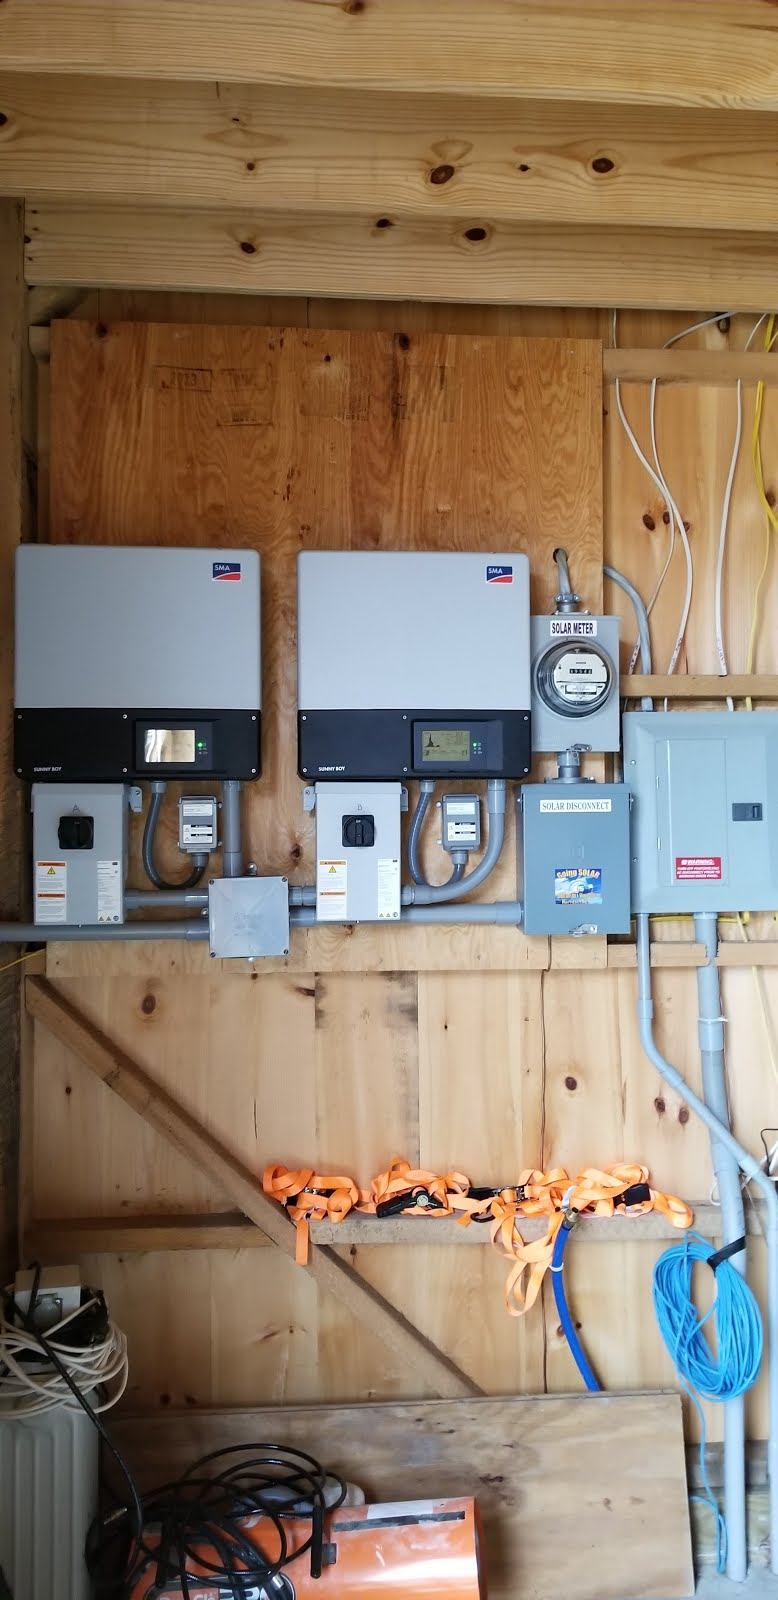 Eis Solar Blog Electrical Wiring Residential 15th Edition Answer Key Schletter Americanmade Localcrew Localsupplies Renewables Energy Independent Solutions Highquality Installations Eis4yoursolarneeds